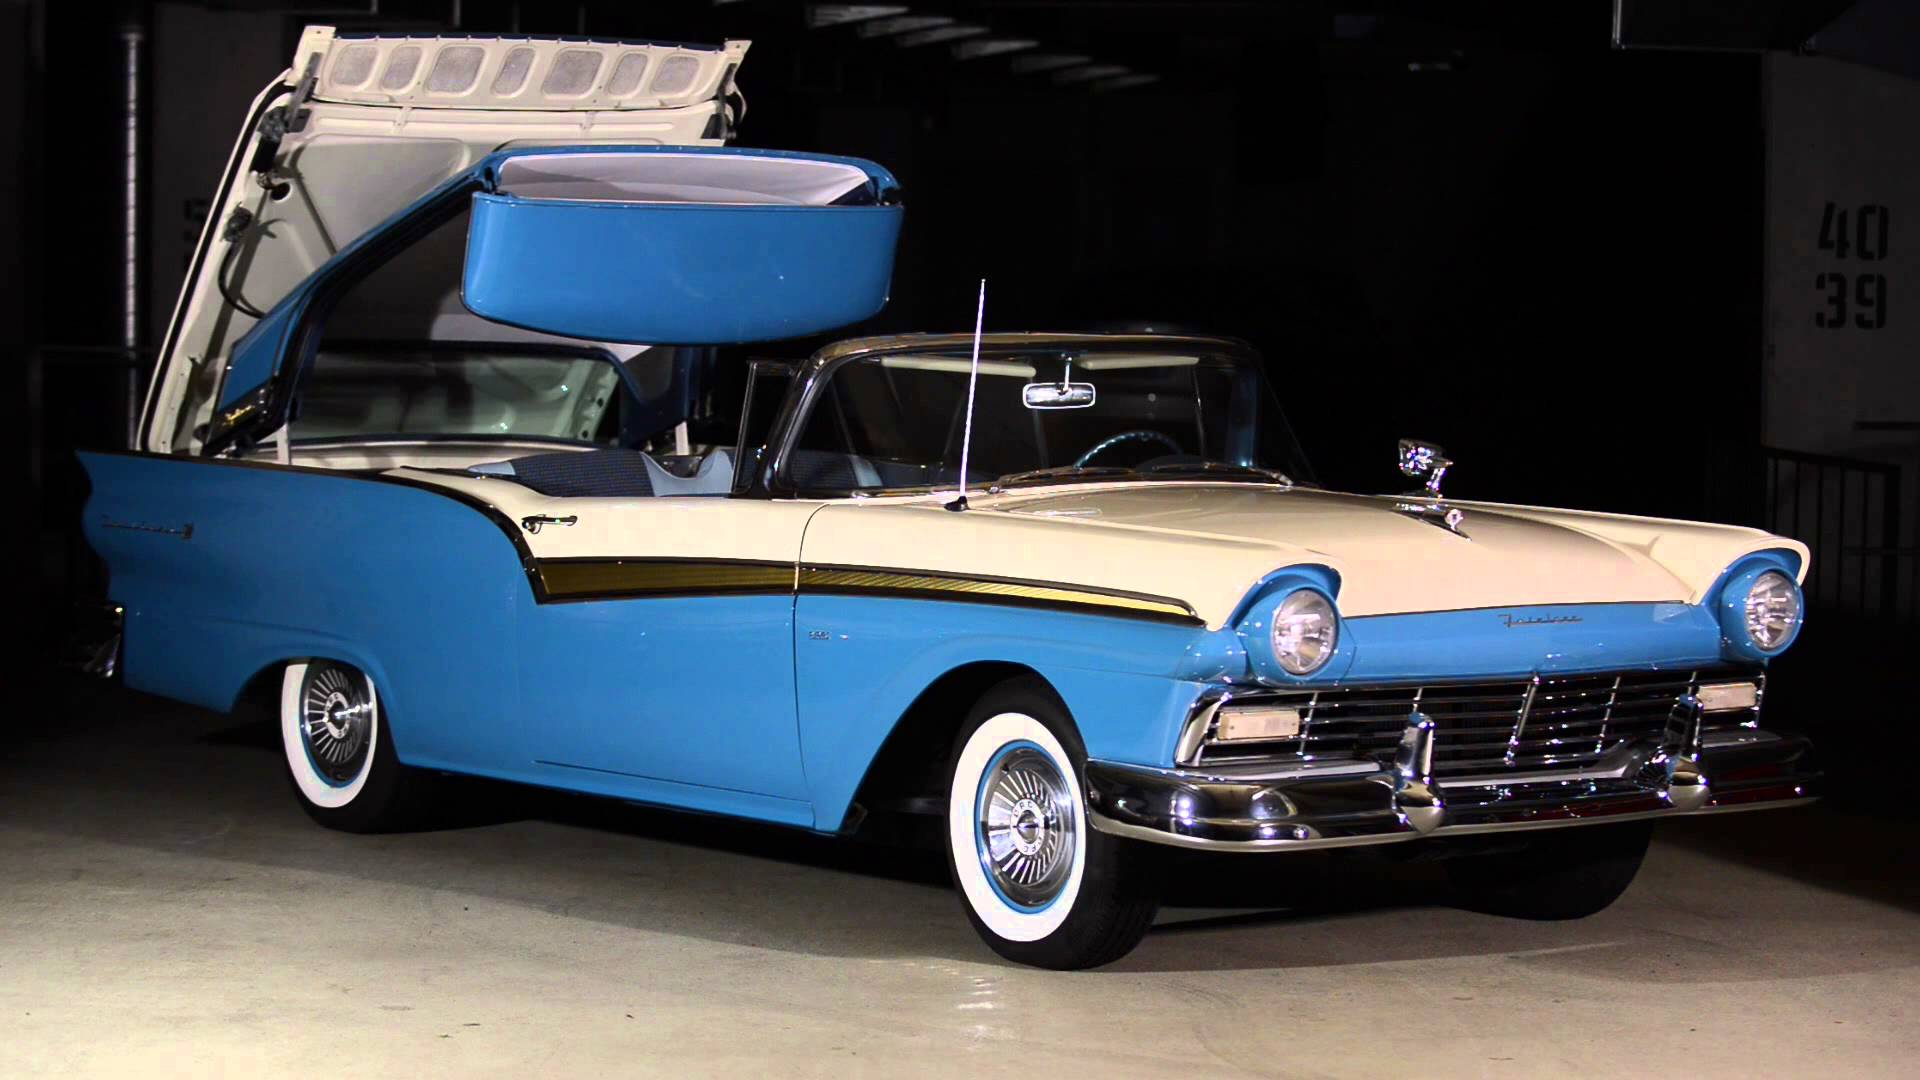 Ford Skyliner Wallpaper HD Photos, Wallpapers and other Images ...